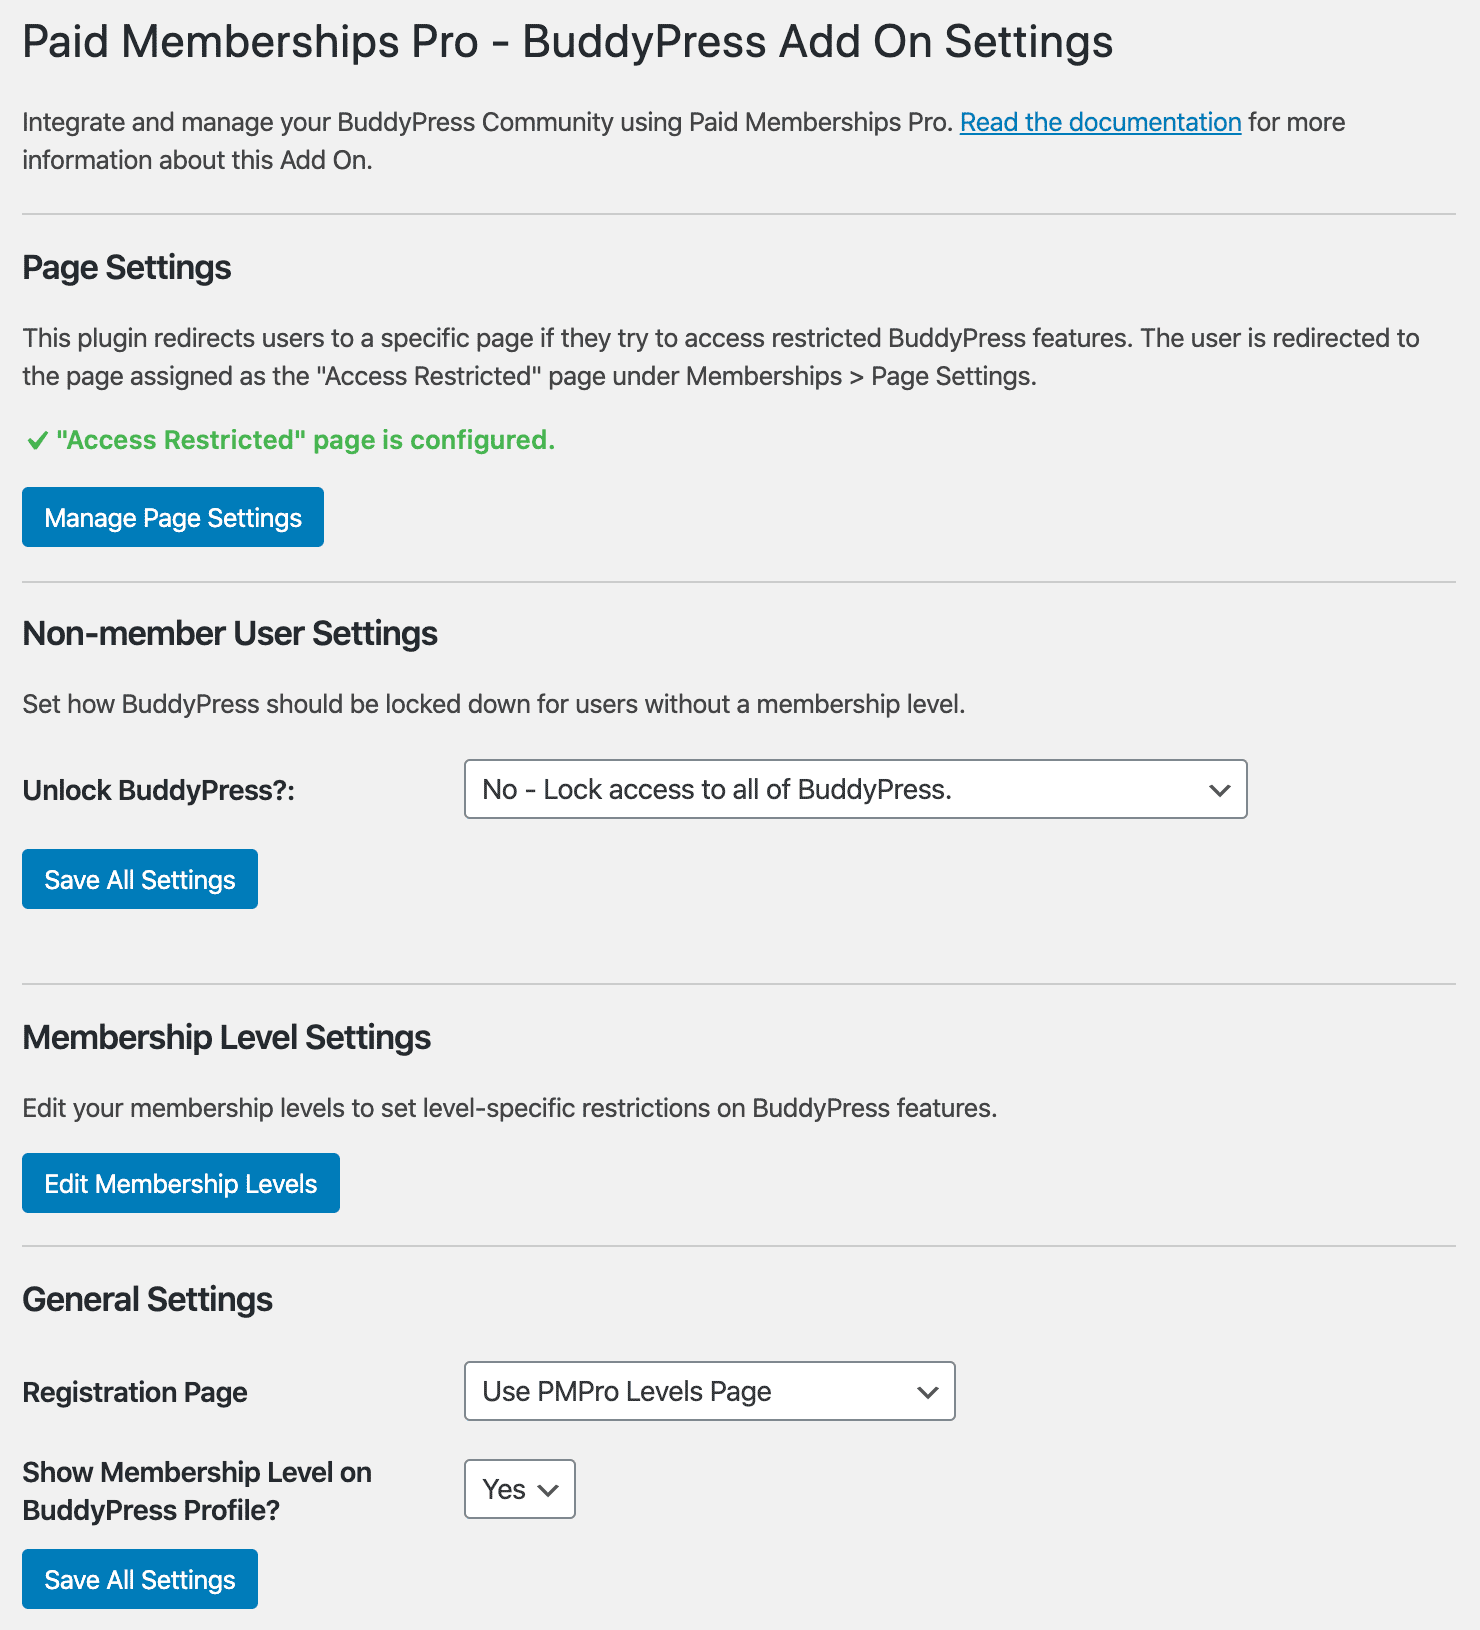 <strong>PMPro BuddyPress Settings</strong> - Explore and manage the features of the integration plugin, including Page Settings, Membership Level Settings, and General Settings.